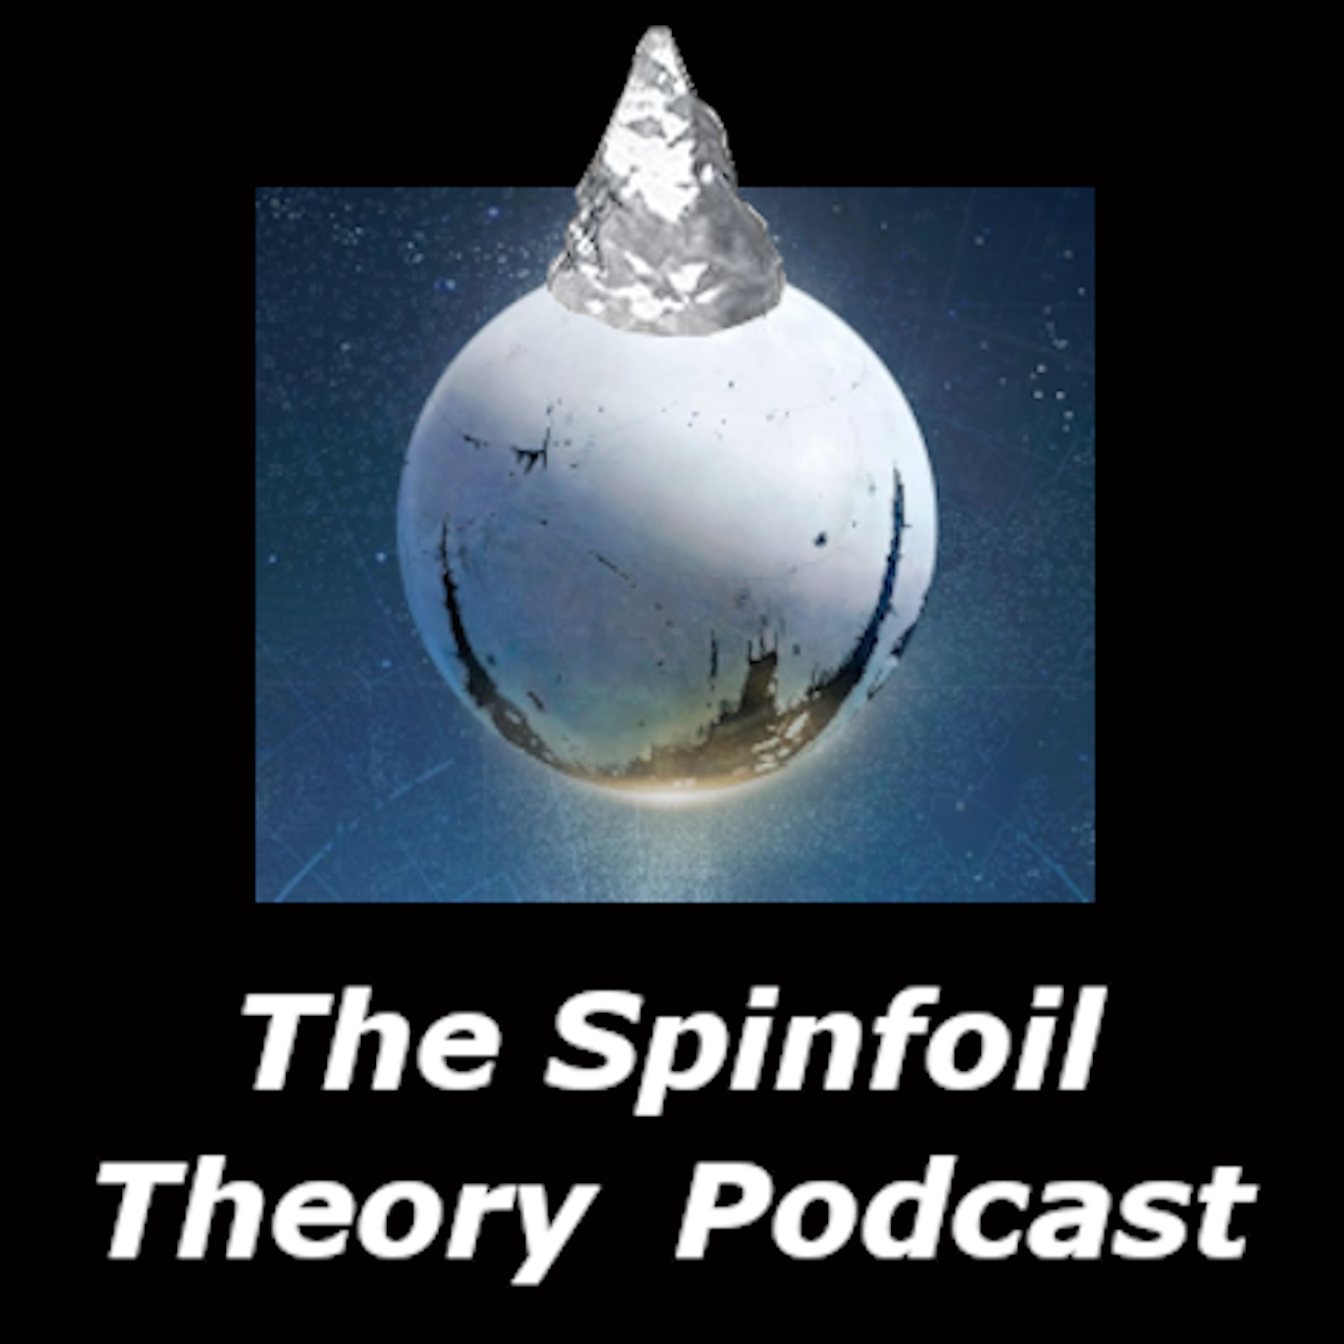 Spinfoil Theory Podcast